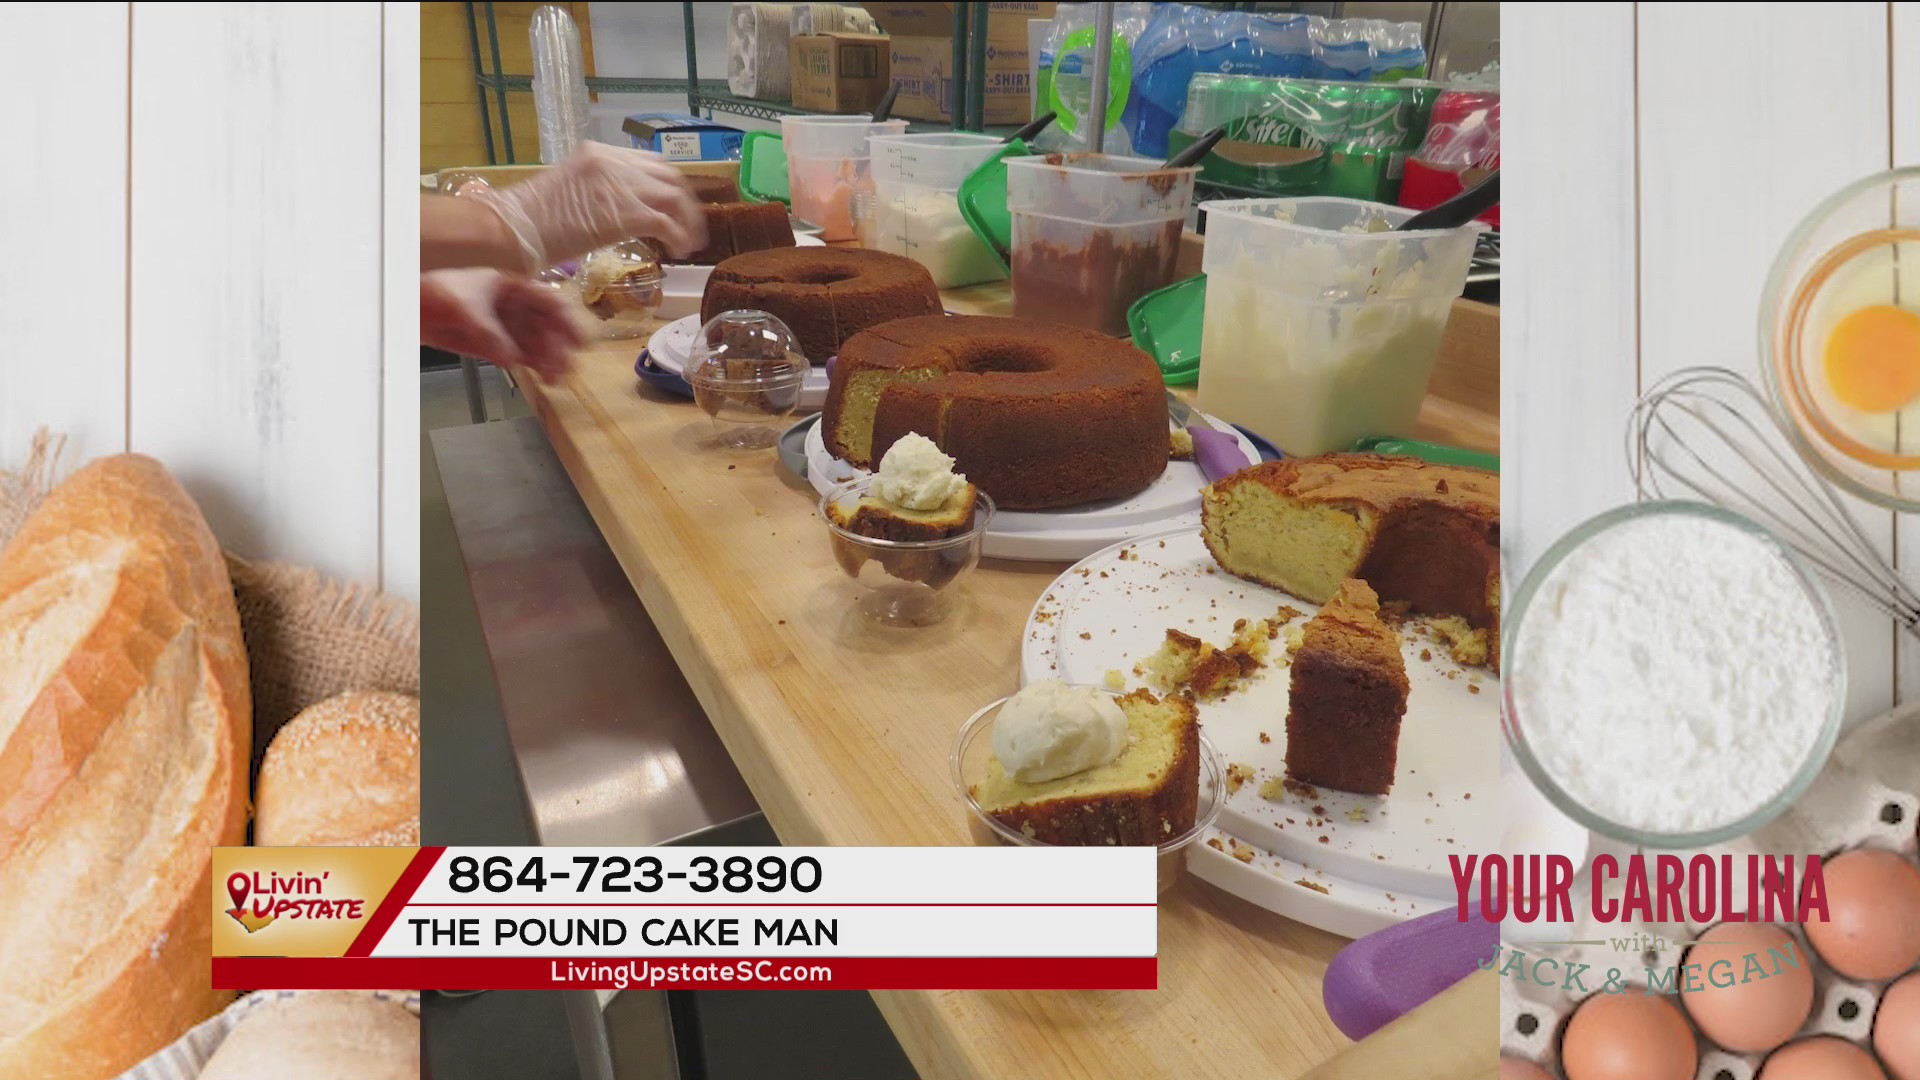 From food truck to storefront, The Pound Cake Man Bakery opens in Clemson